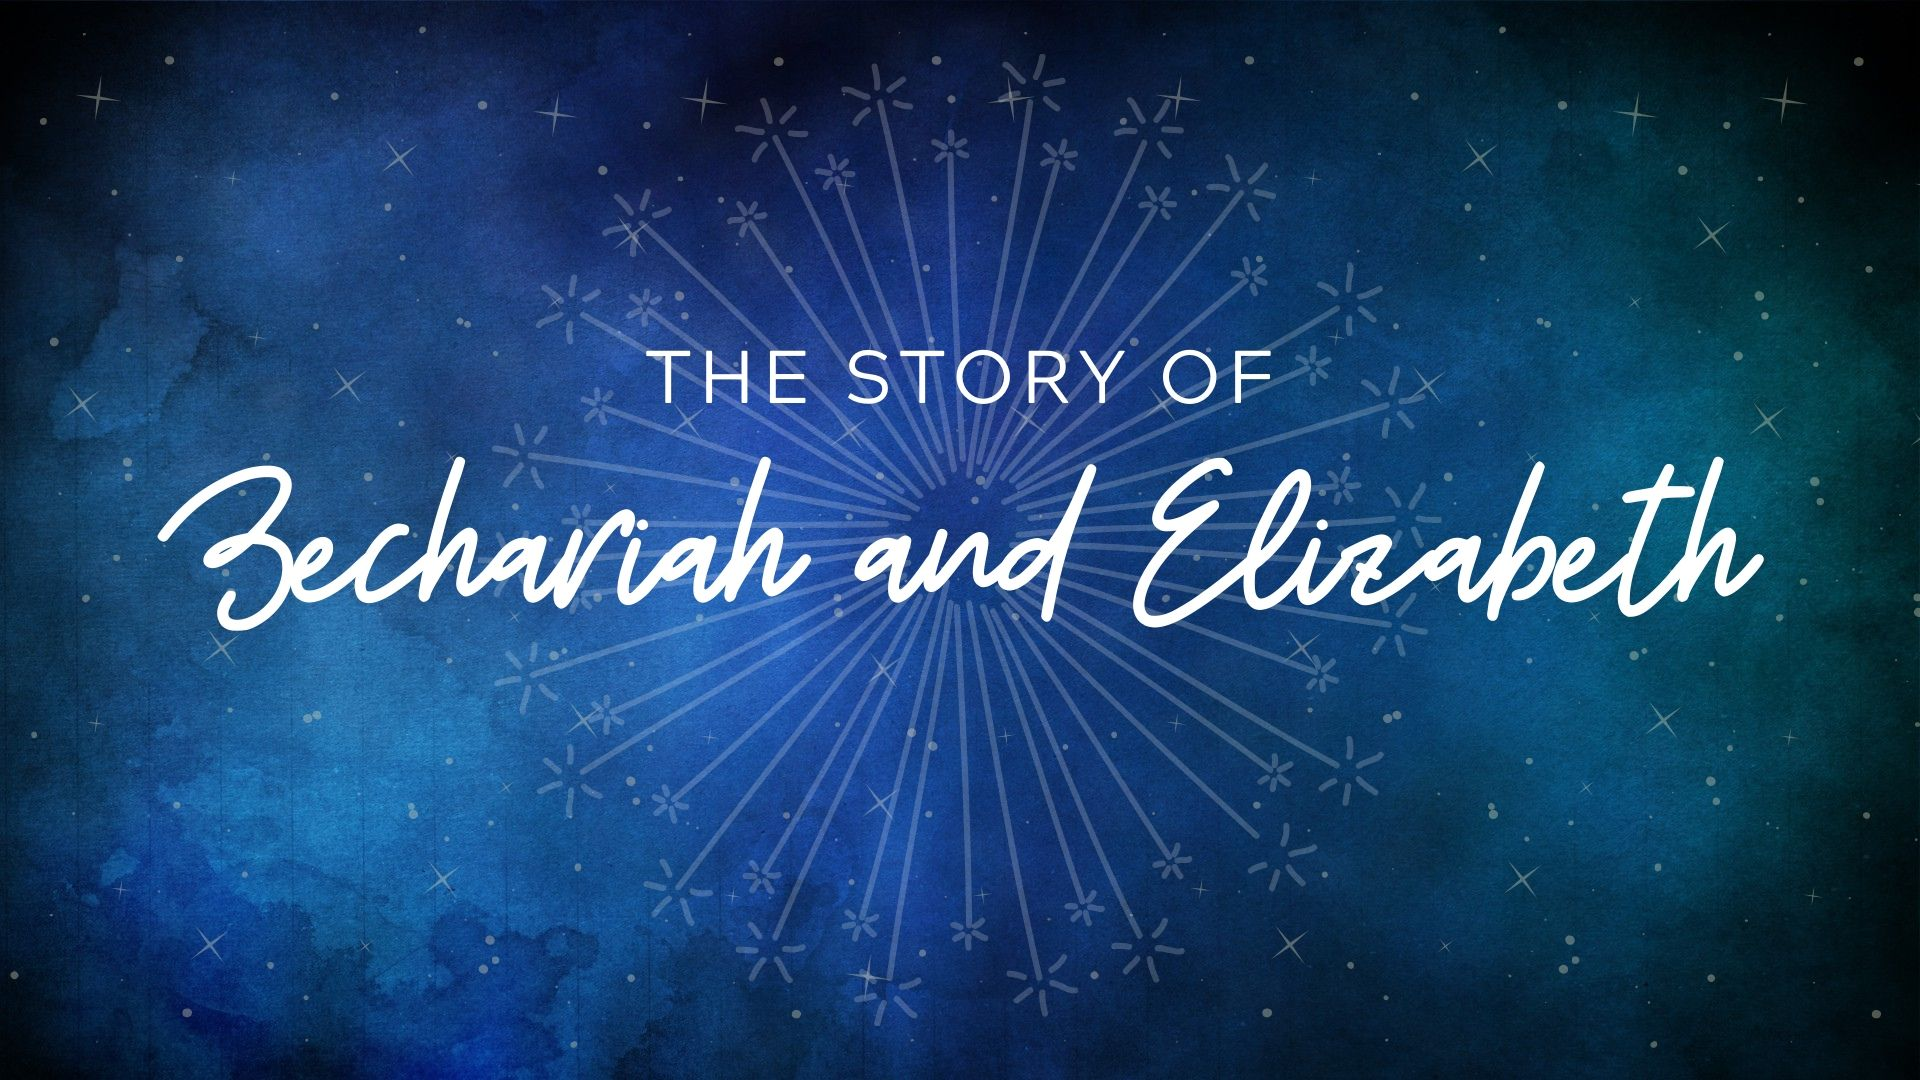 The Story of Zechariah and Elizabeth